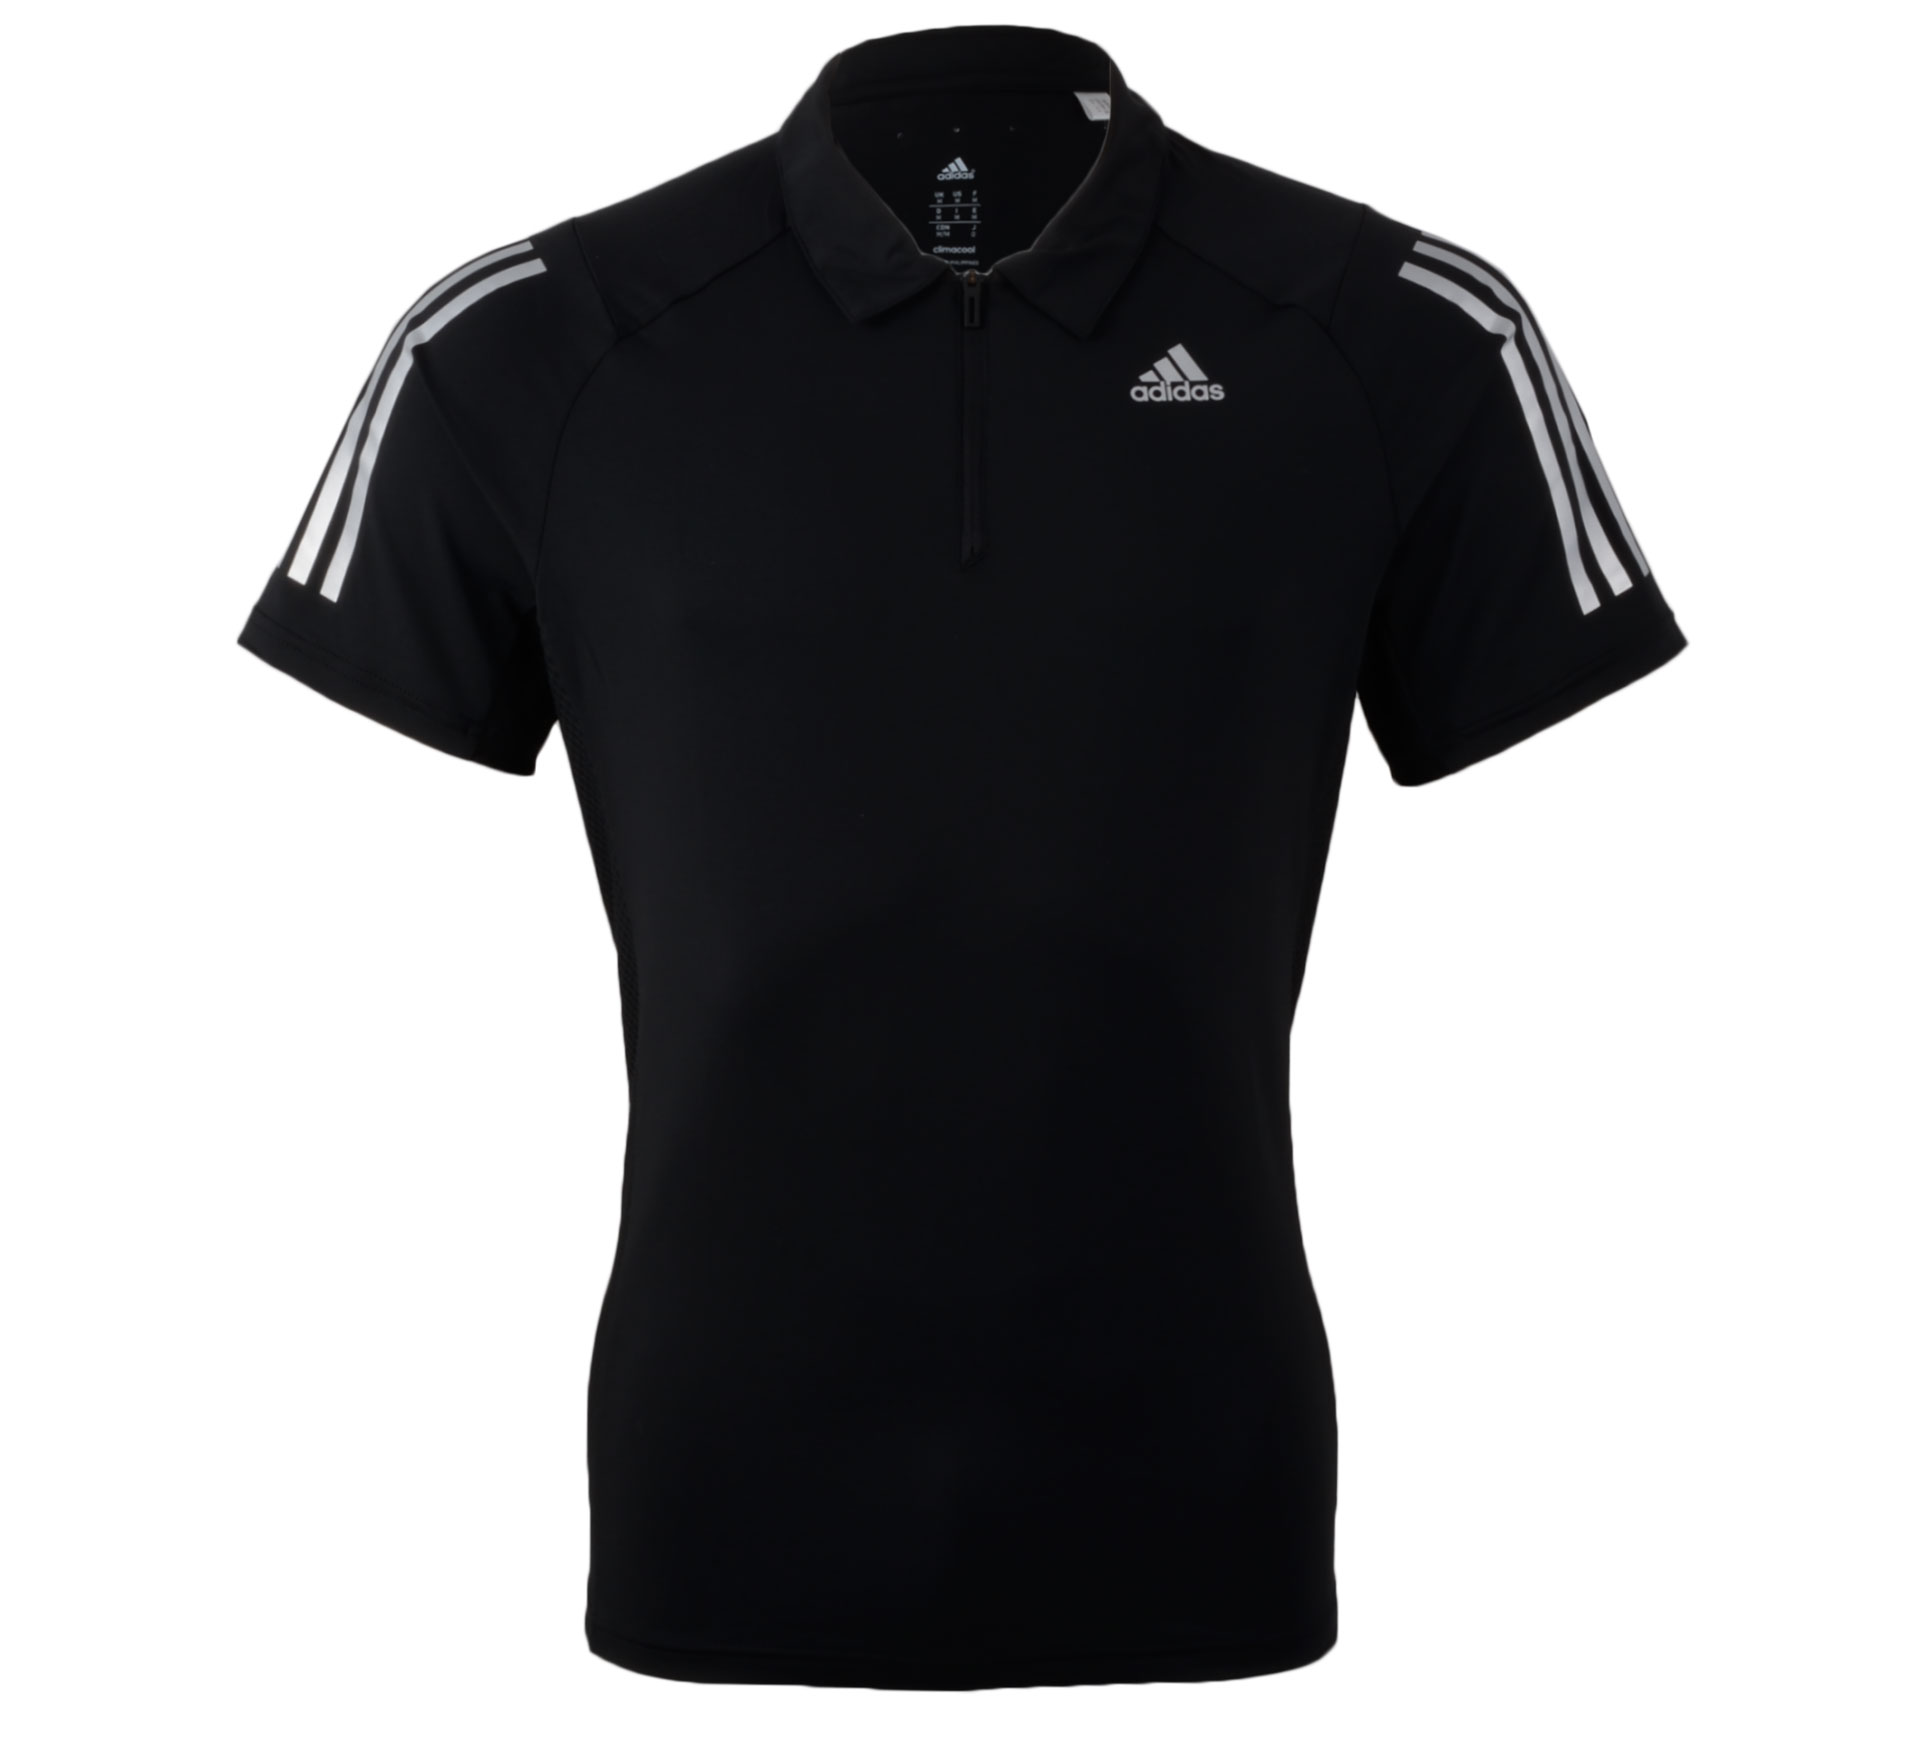 Adidas Cool365 Polo Men zwart - zilver